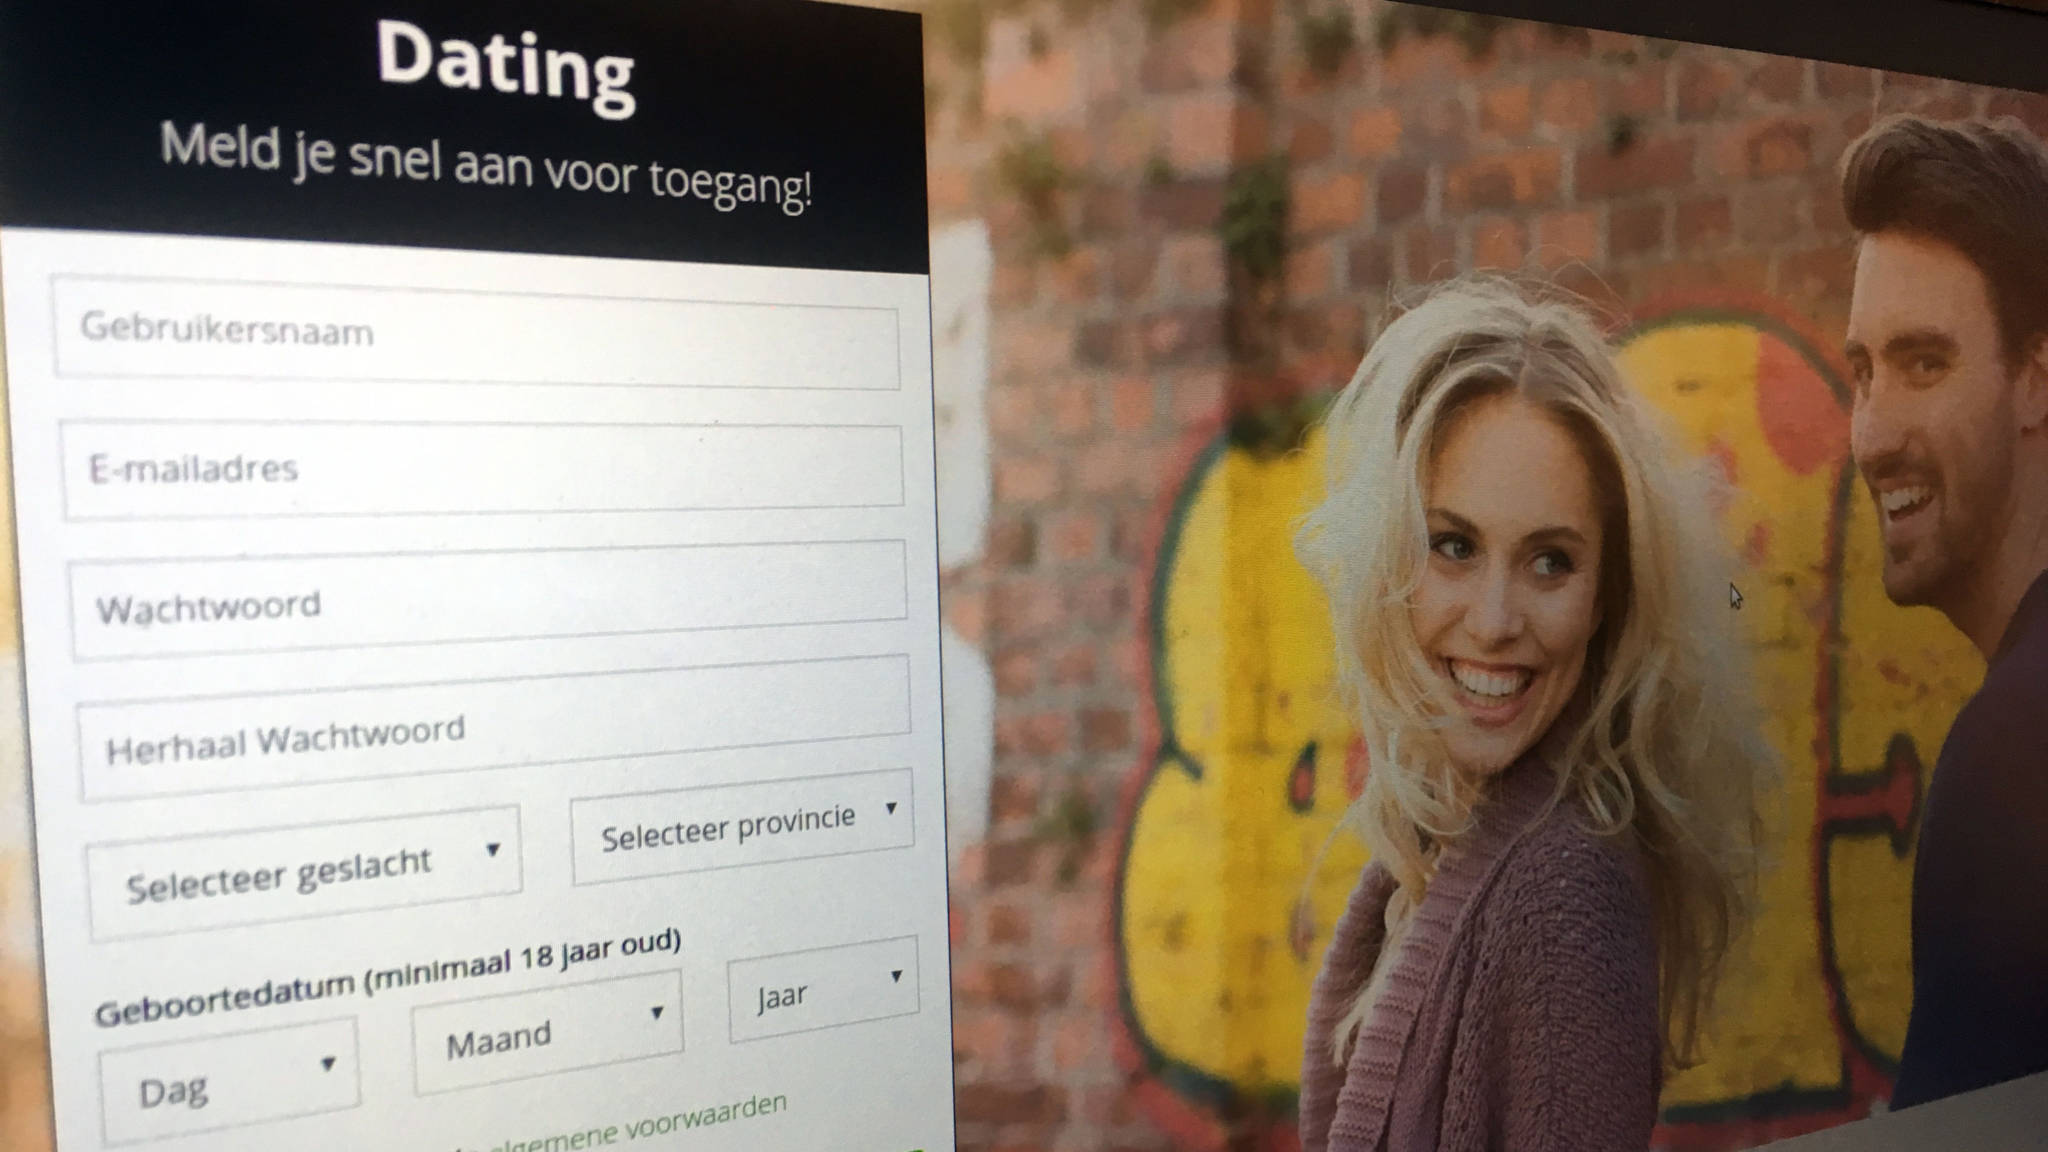 Dating sites slogan